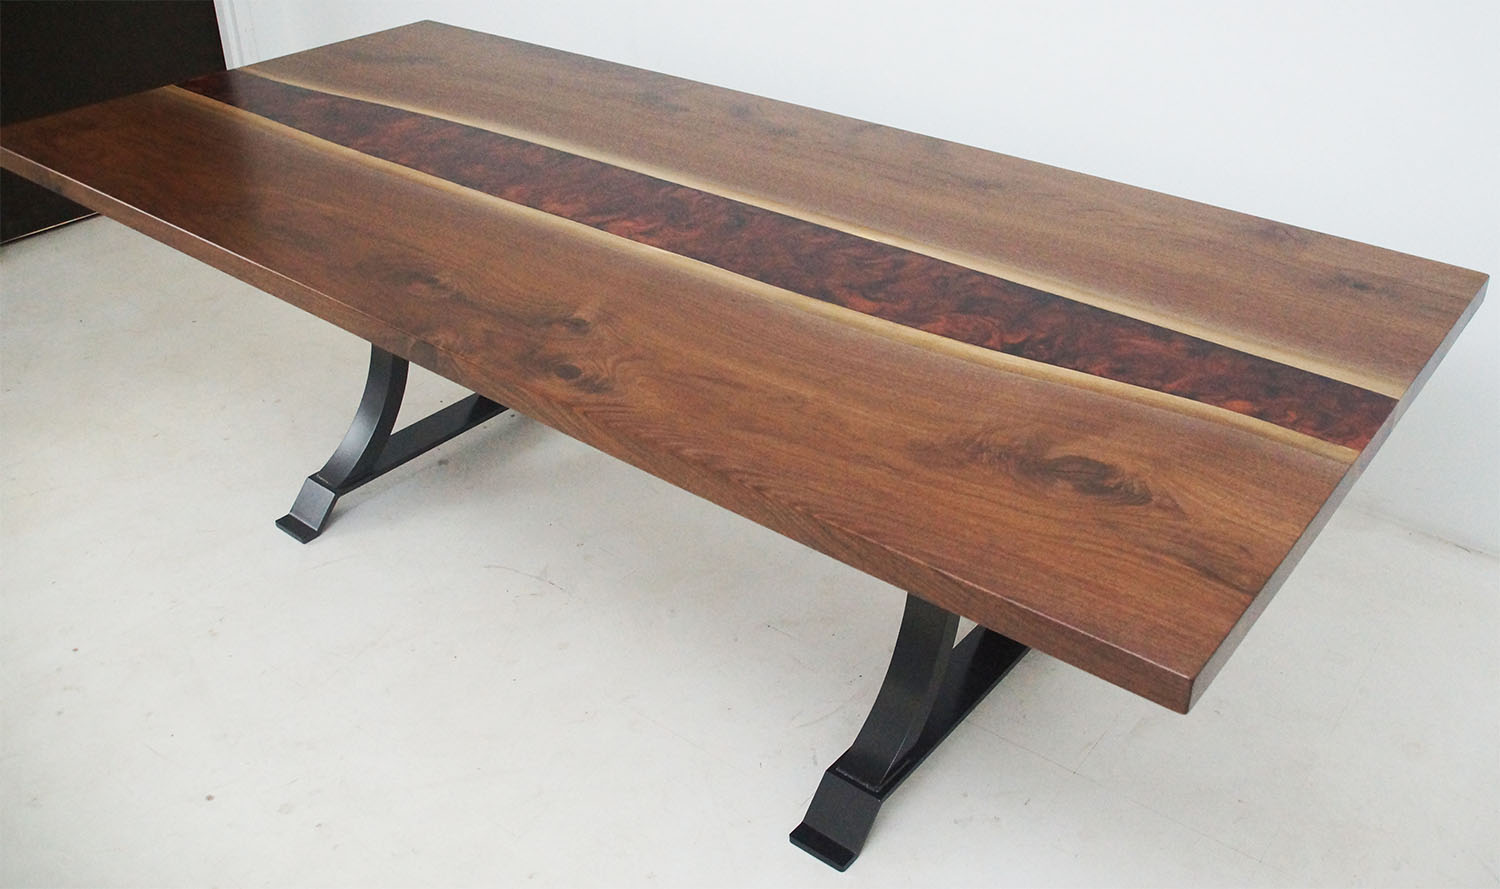 Walnut Dining Room Table With Copper & Black Epoxy Resin